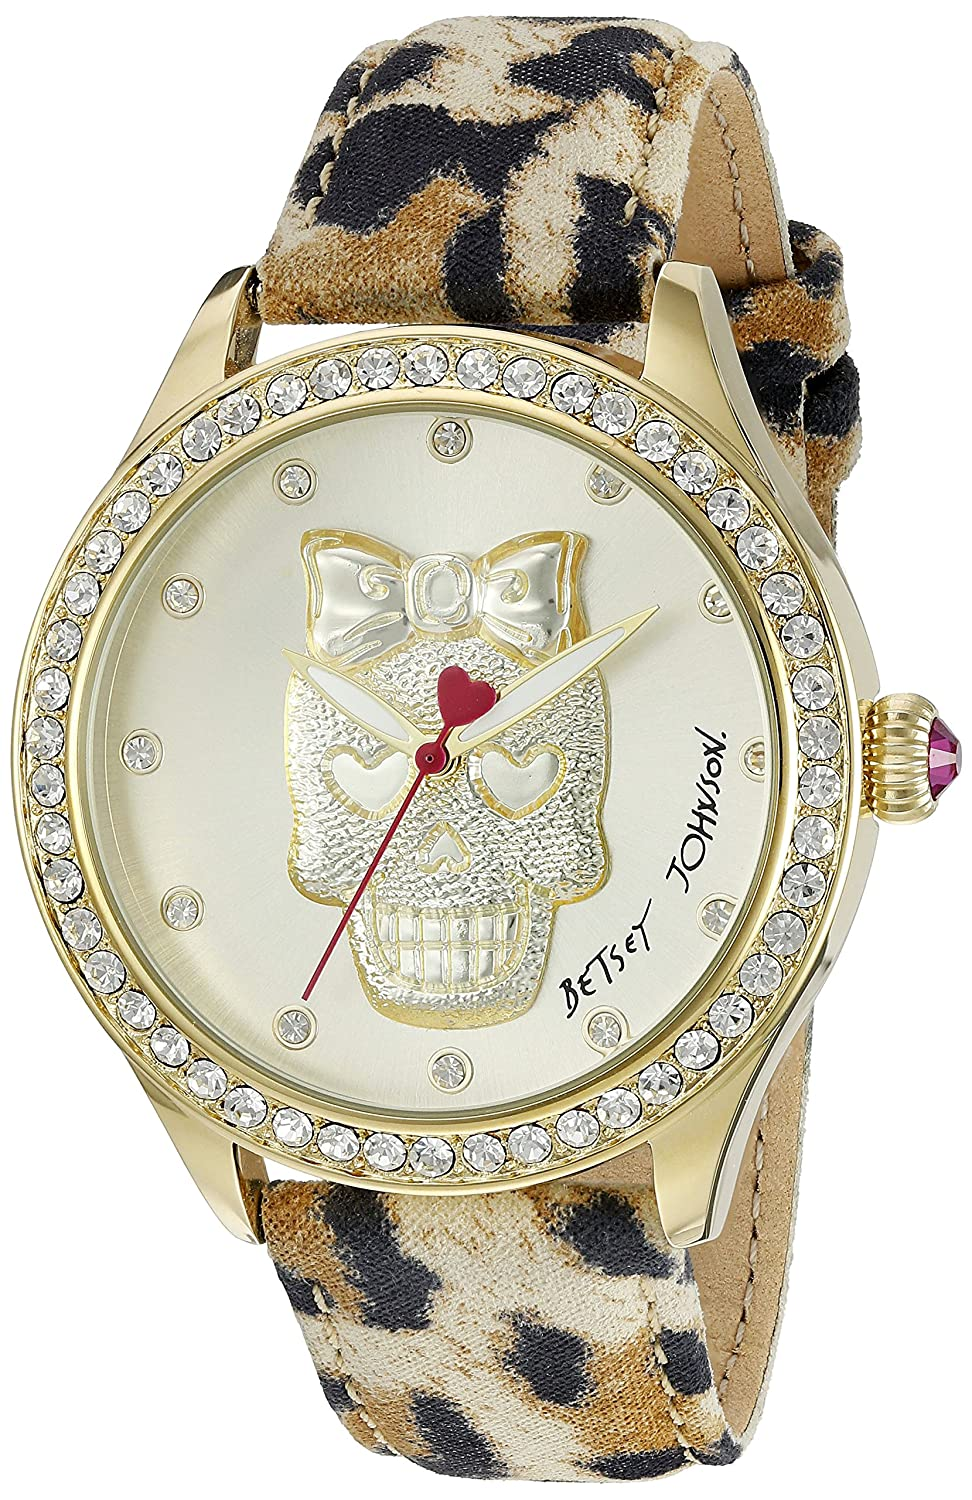 Betsey Johnson Women's BJ00517-24 Analog Display Quartz Multi-Color Watch